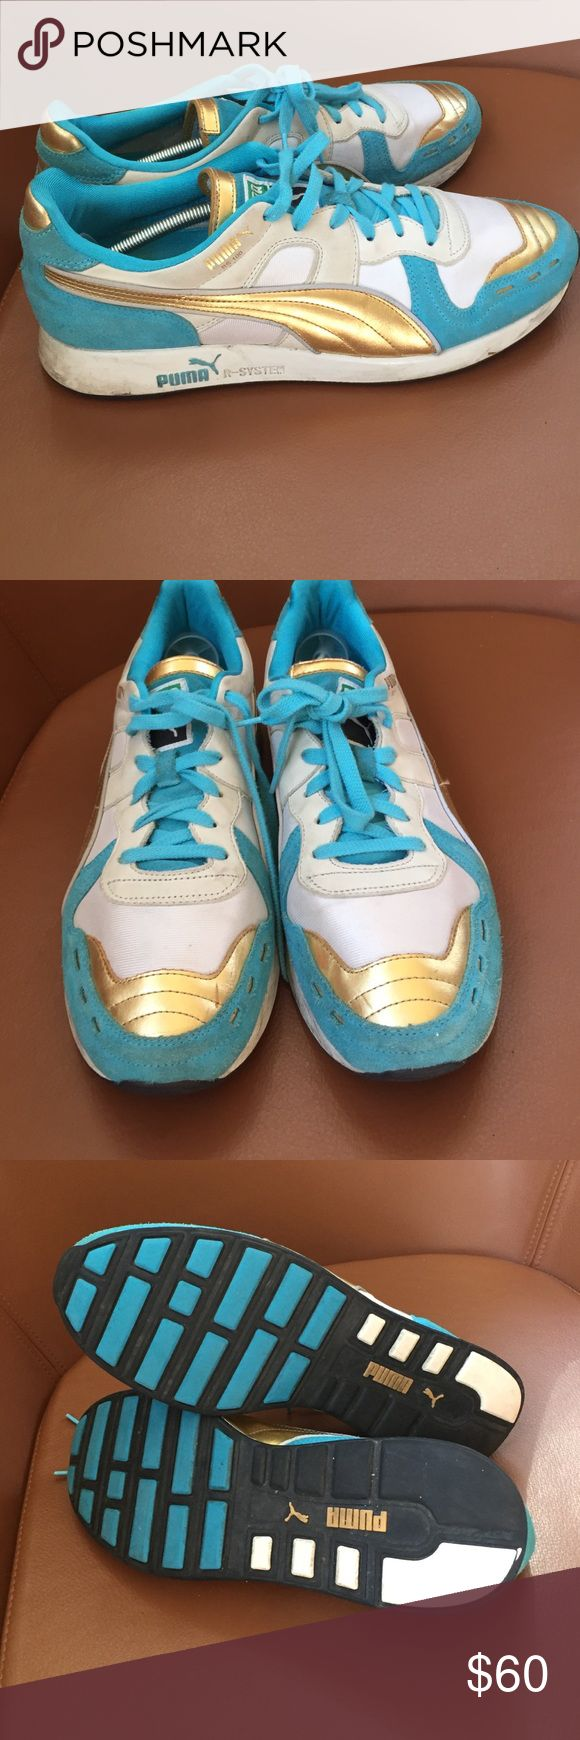 RARE Puma Sneakers men's Sz 12 CLASSIC puma. Rare gold and turquoise color! Has some discoloration on white soles from wear, but other than that, good condition! Puma Shoes Athletic Shoes